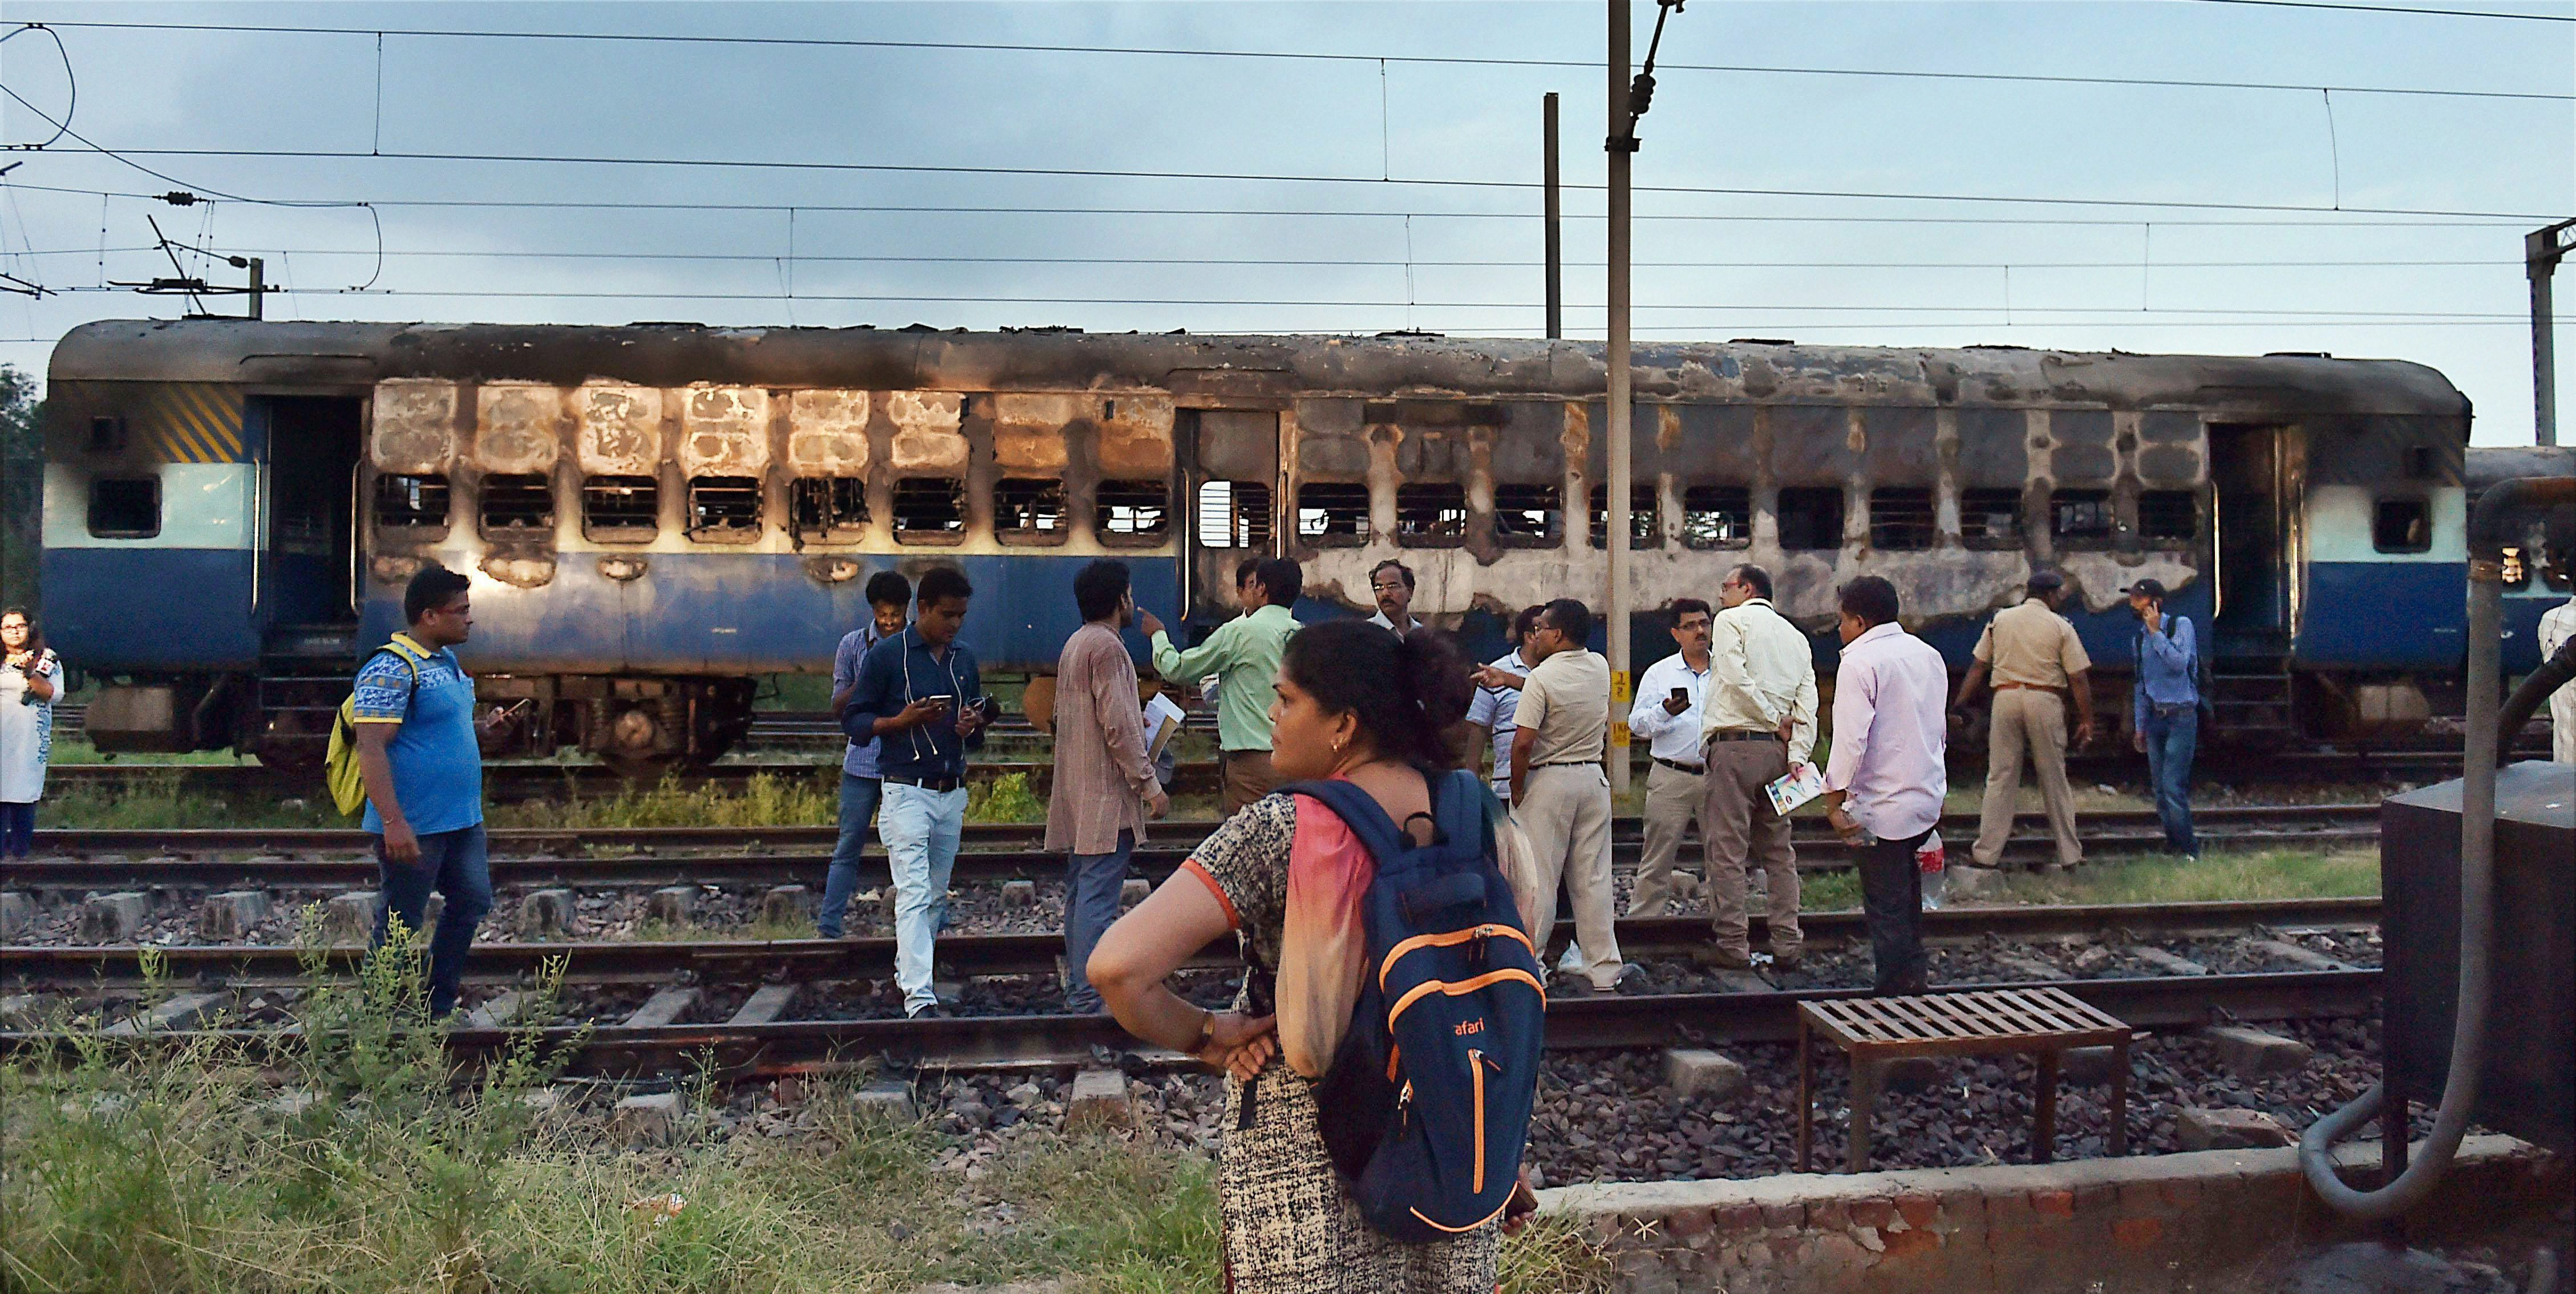 Dera Sacha Sauda followers vandalised and set on fire several coaches of trains at Delhi's Anand Vihar Station. (Credit: PTI)